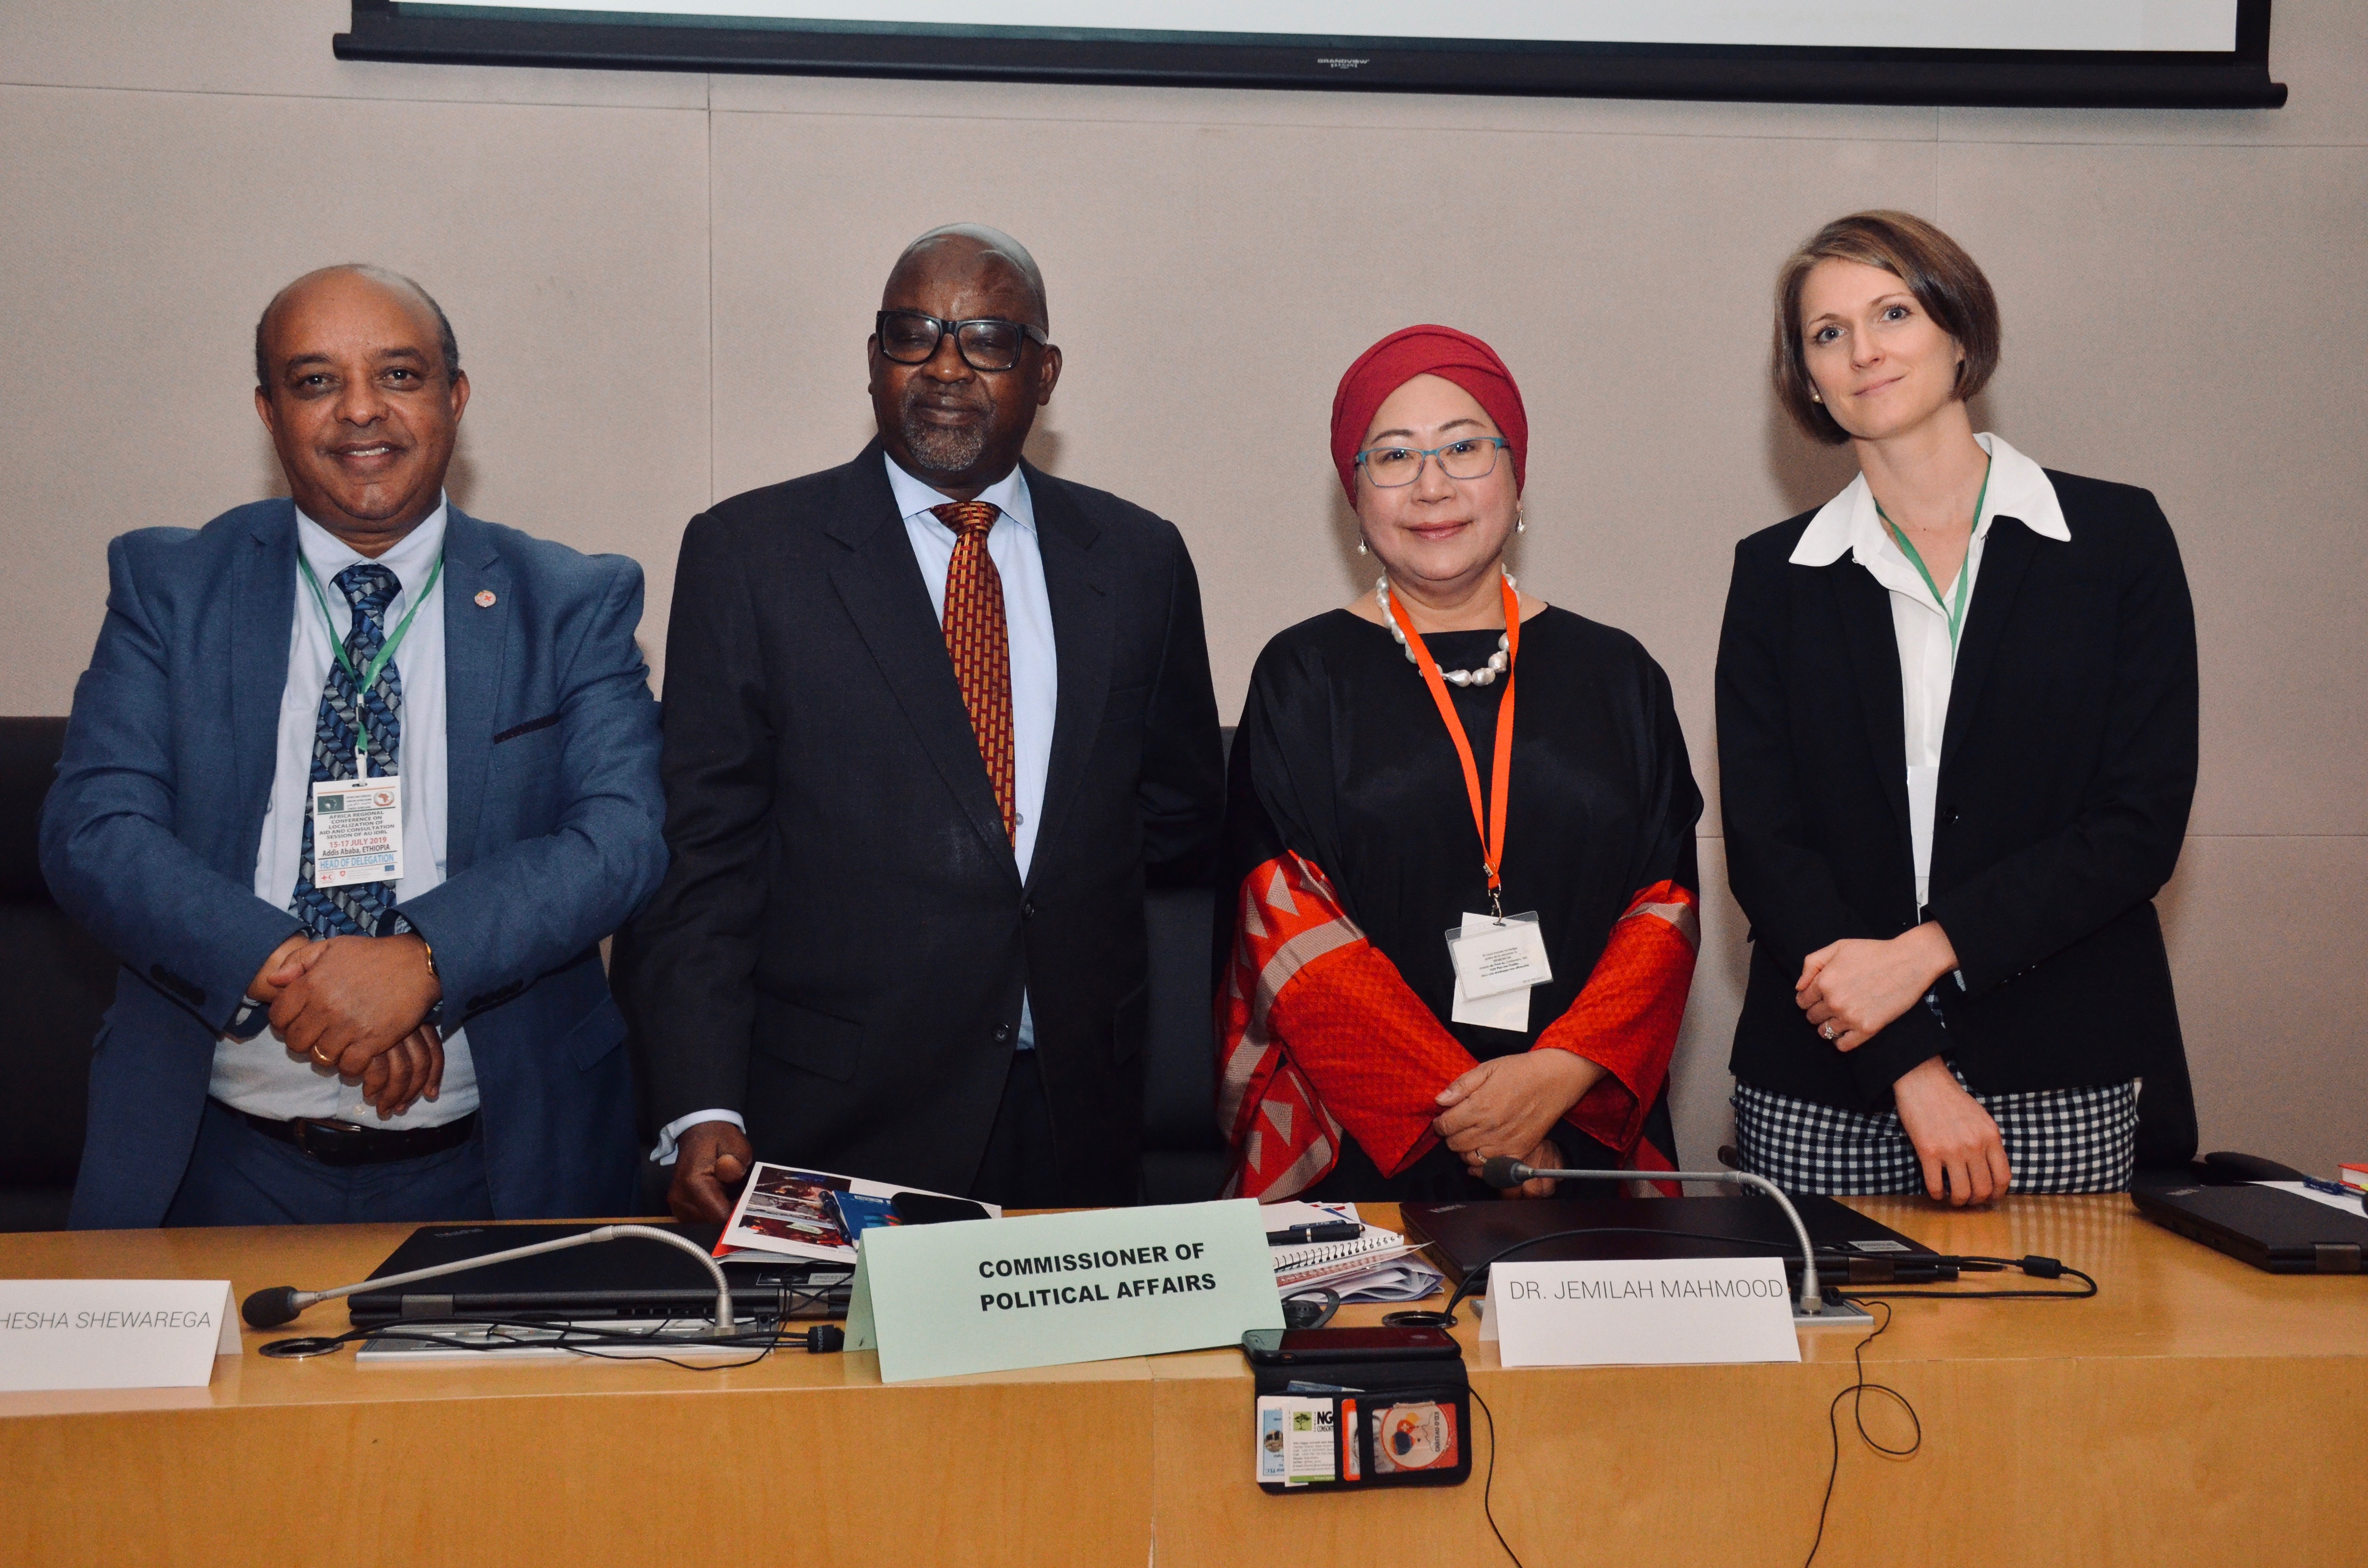 Africa Regional Conference on Localisation Day 1 Opening Session Plenary - Speakers 2